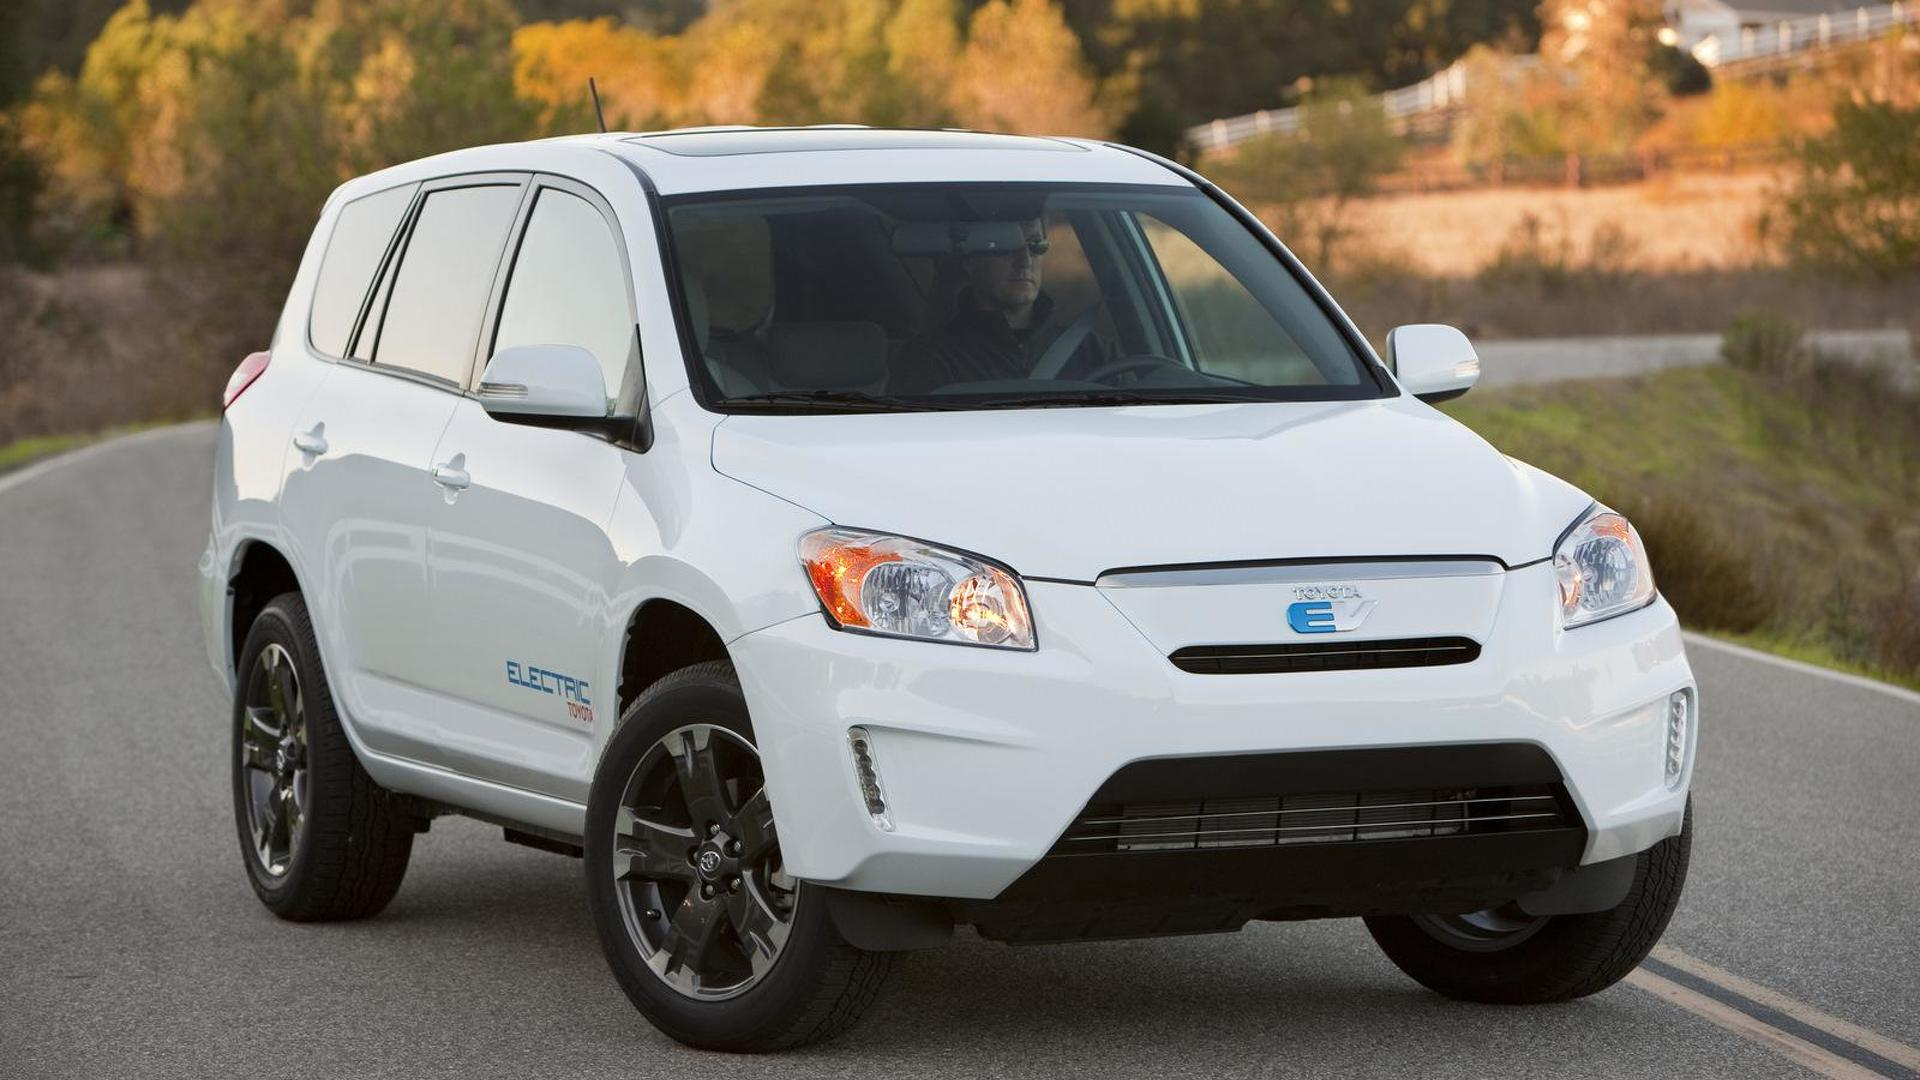 Toyota Rav4 Ev To Be Discontinued Deal With Tesla Motors Not Being Renewed